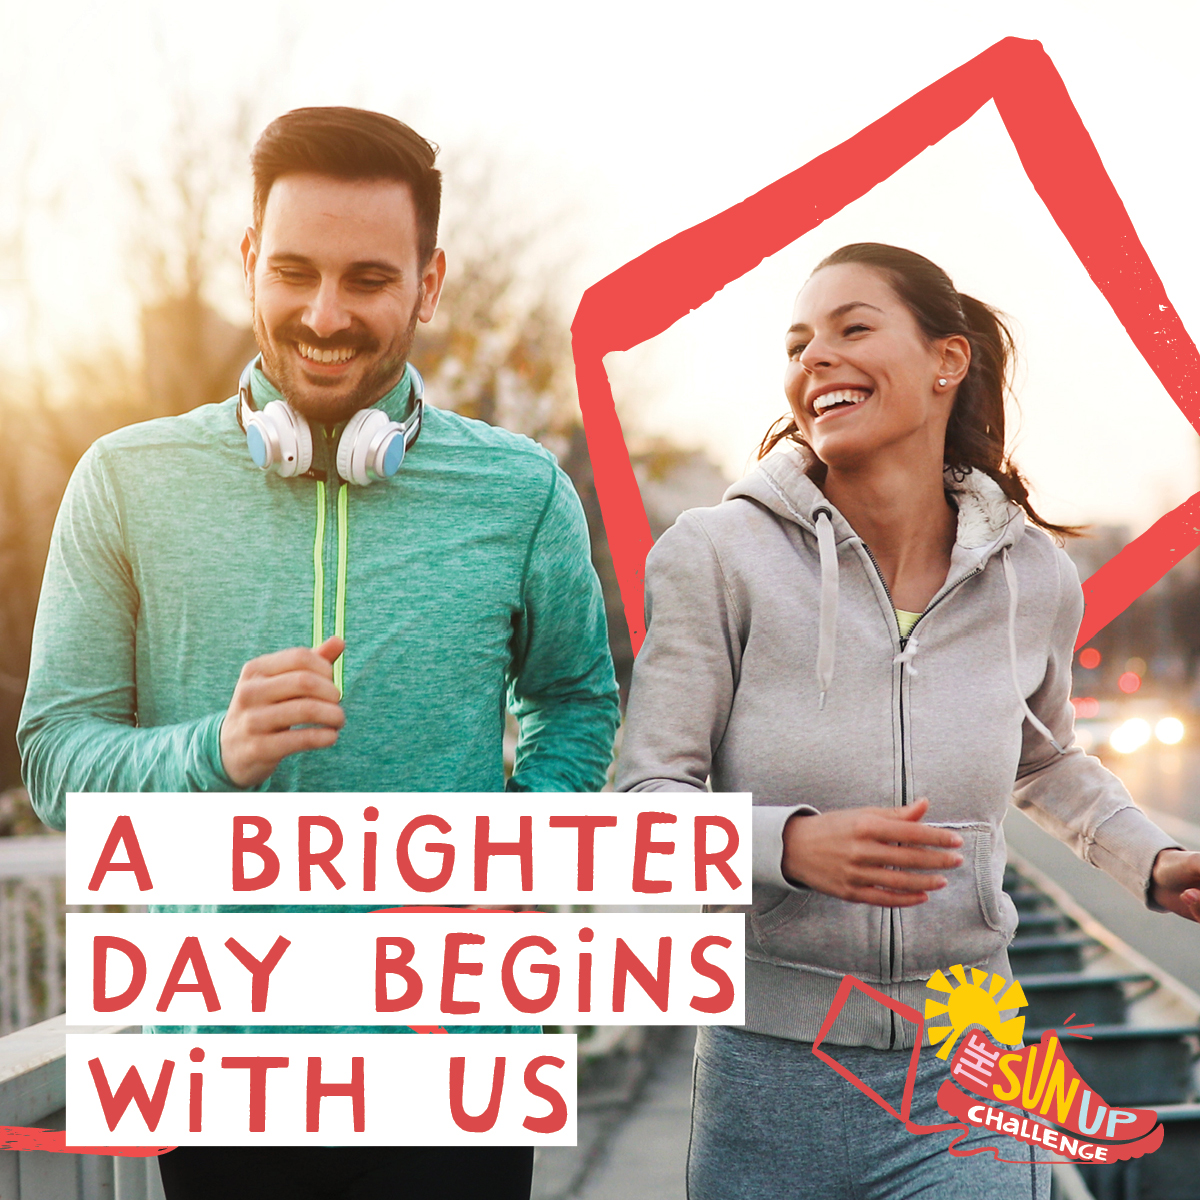 A Brighter Day Begins With Us (photo)